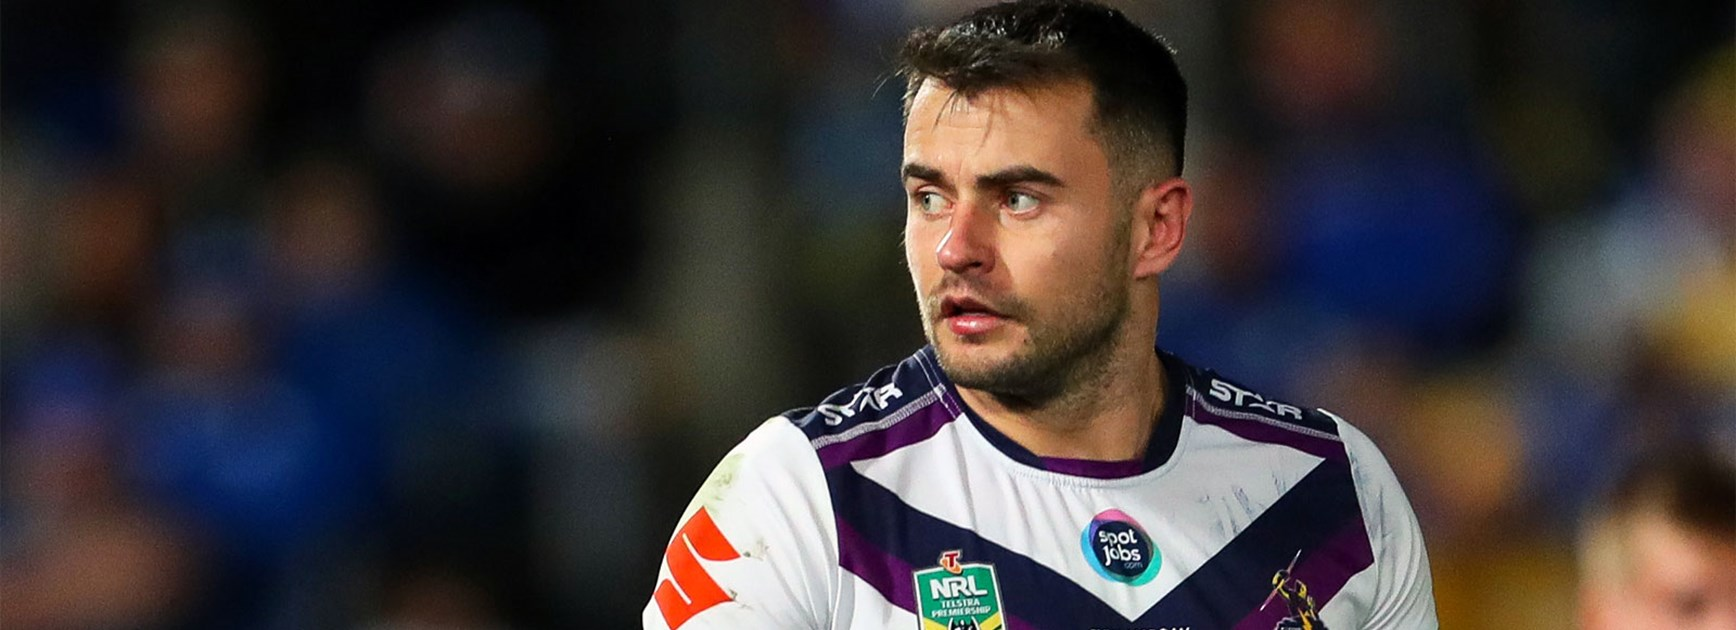 Ryan Morgan enjoyed a winning start to life as a Storm player against his old Parramatta teammates in Round 11.